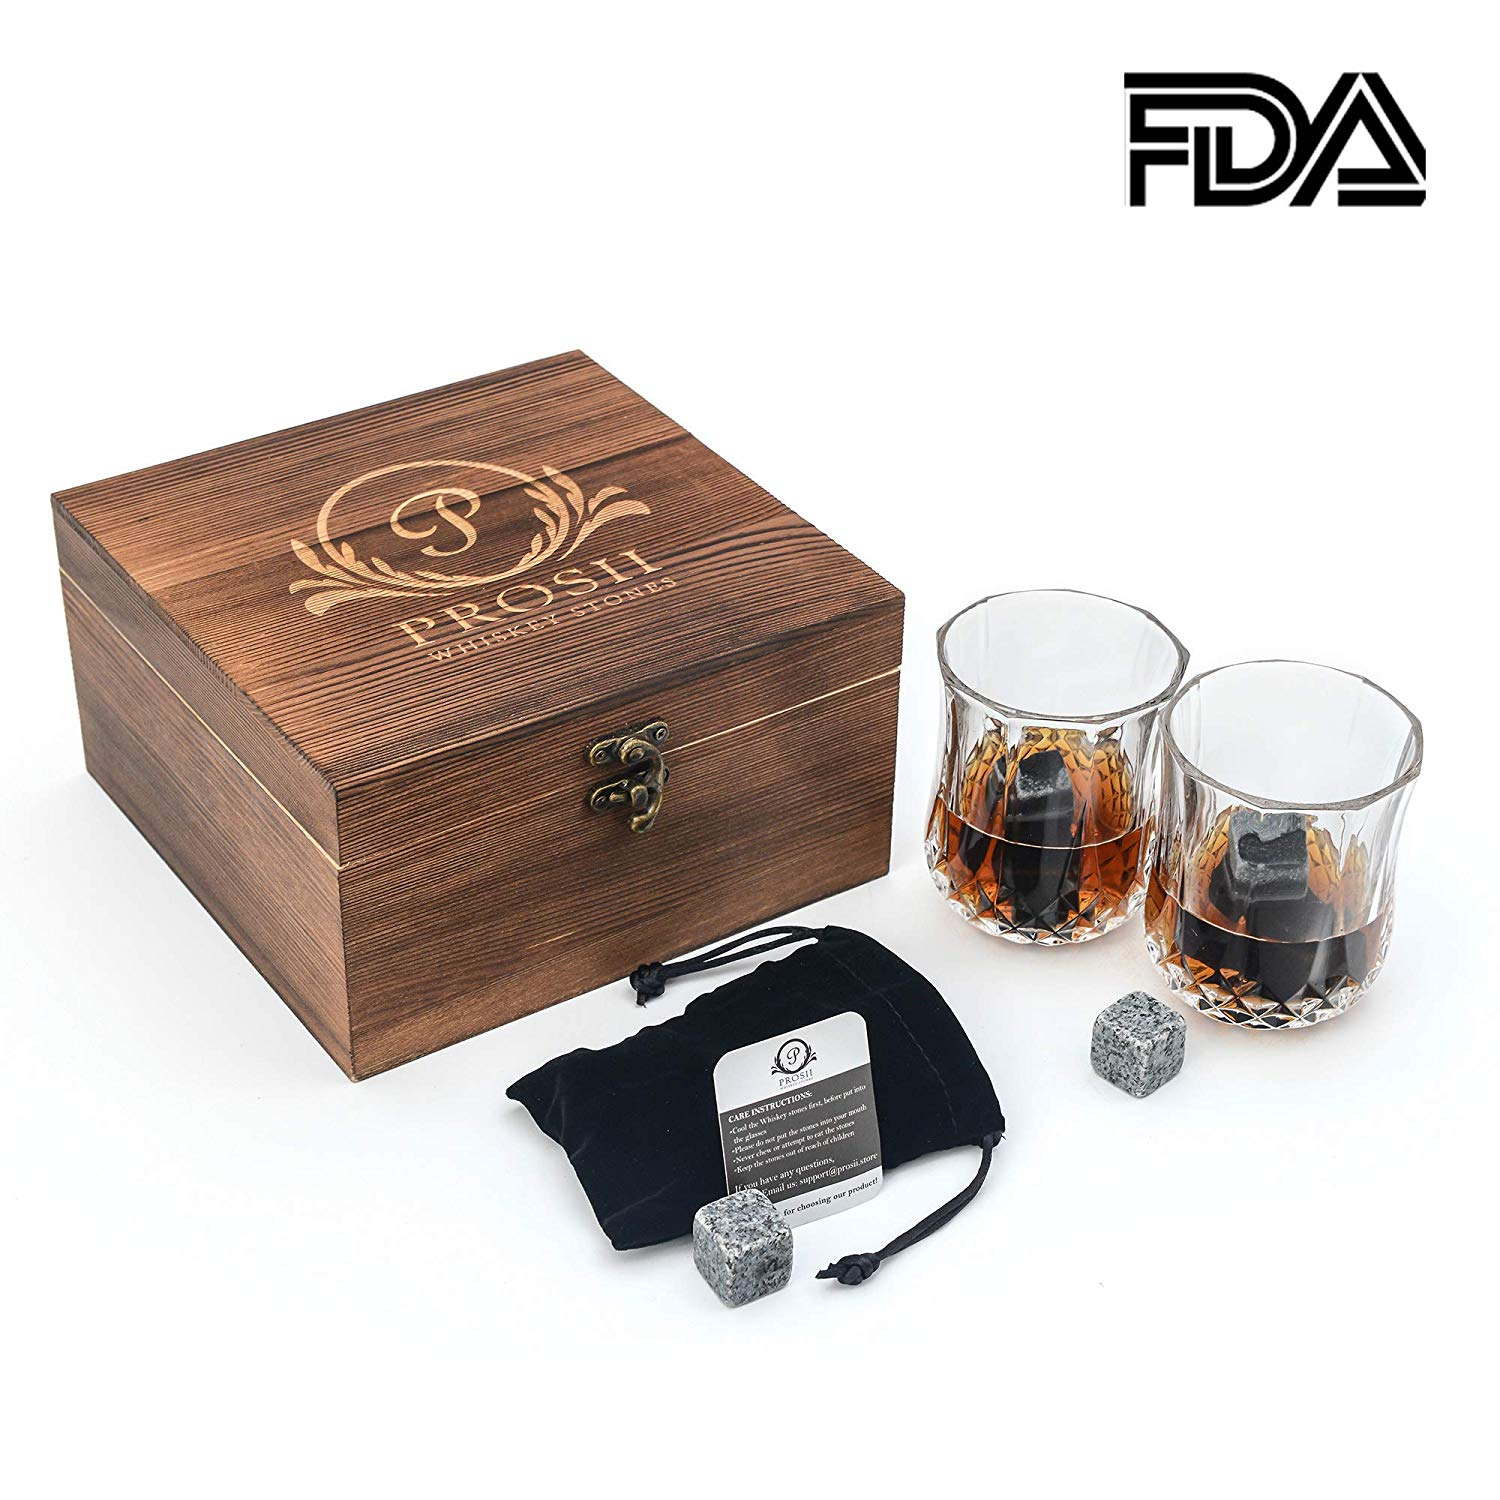 Whiskey Stones Gift Set by Prosii - 8 Granite Chilling Whisky Rocks - Reusable Ice Cubes - 2 Crystal Whiskey Glasses - Black Velvet Pouch in Luxury Wooden Box - Great Bar Accessories